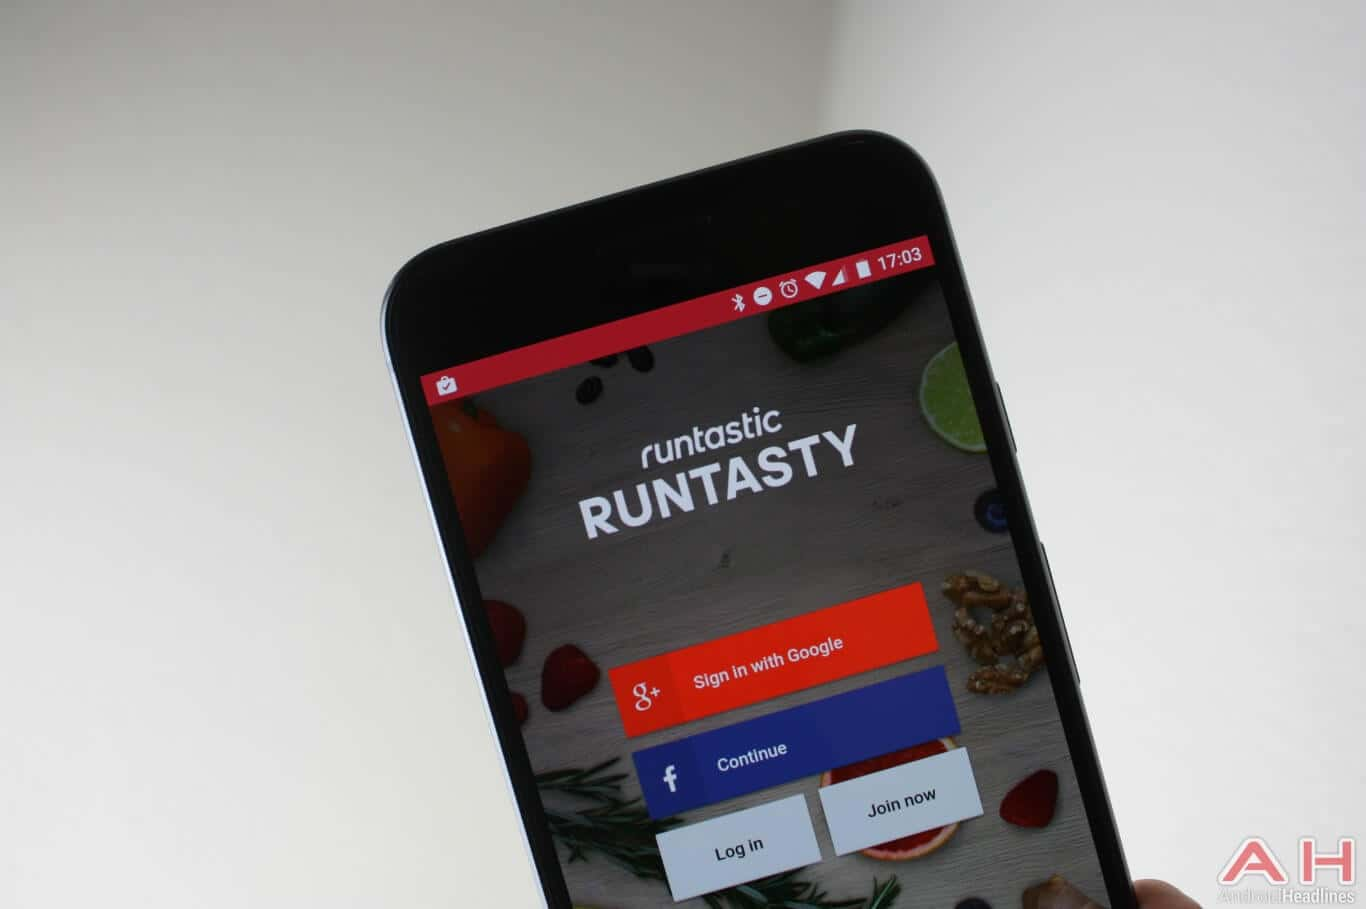 Meet runtasty runtastics new healthy food recipe app meet runtasty runtastics new healthy food recipe app androidheadlines forumfinder Images